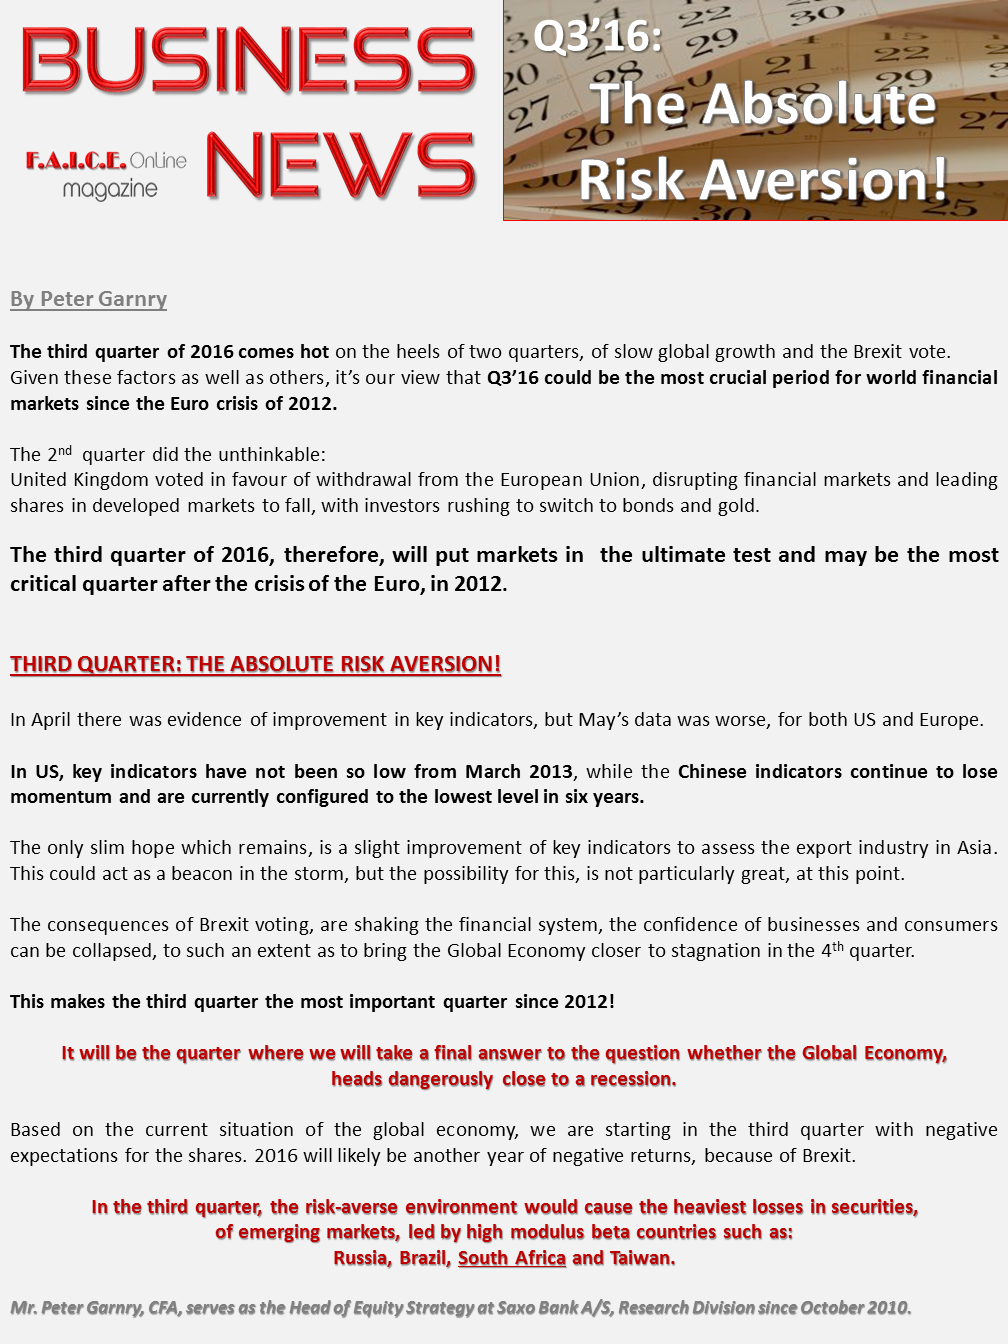 Q3-16: The absolute risk aversion